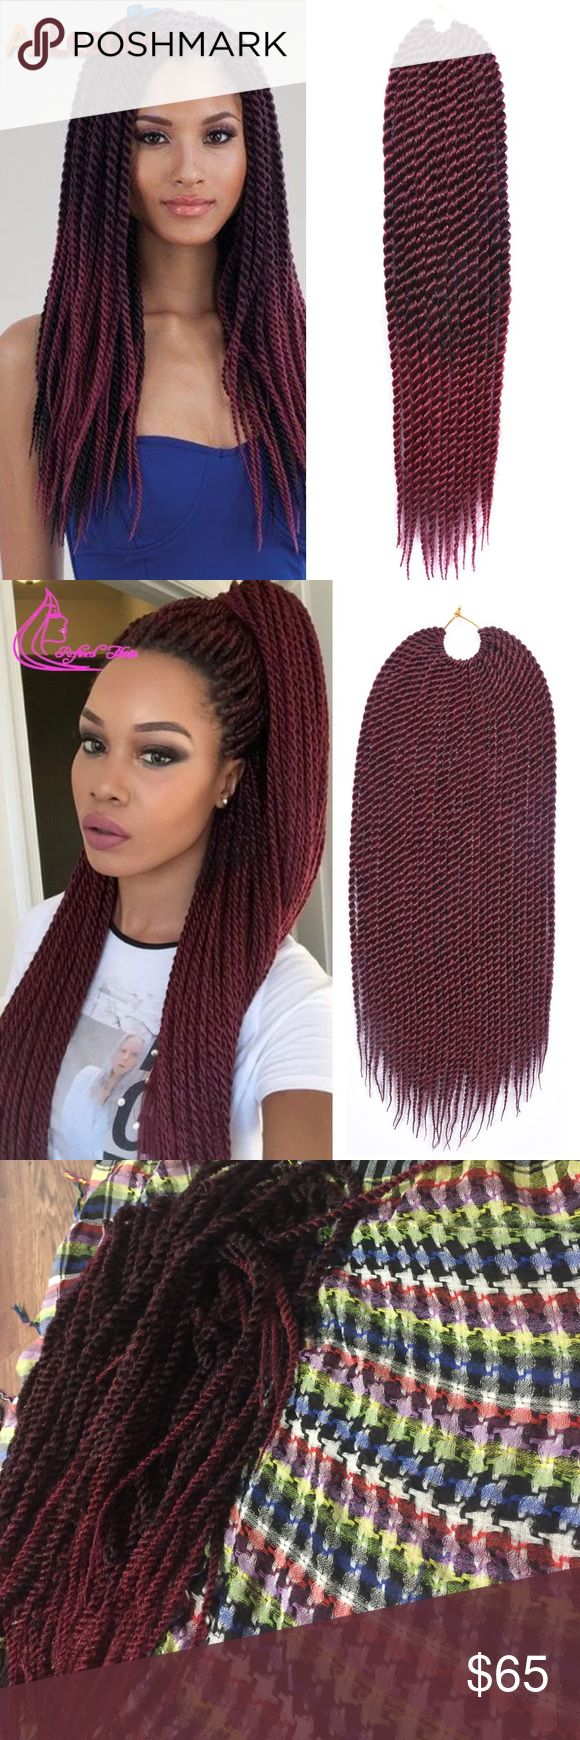 """Medium size Crochet Senegalese Twist 91 twist These are handmade by me! This is enough for one whole head! These won't unravel unless you personally take a comb to them and unravel them!! They are 20"""" it's burgundy ombré colored! Pre-looped! Accessories Hair Accessories"""